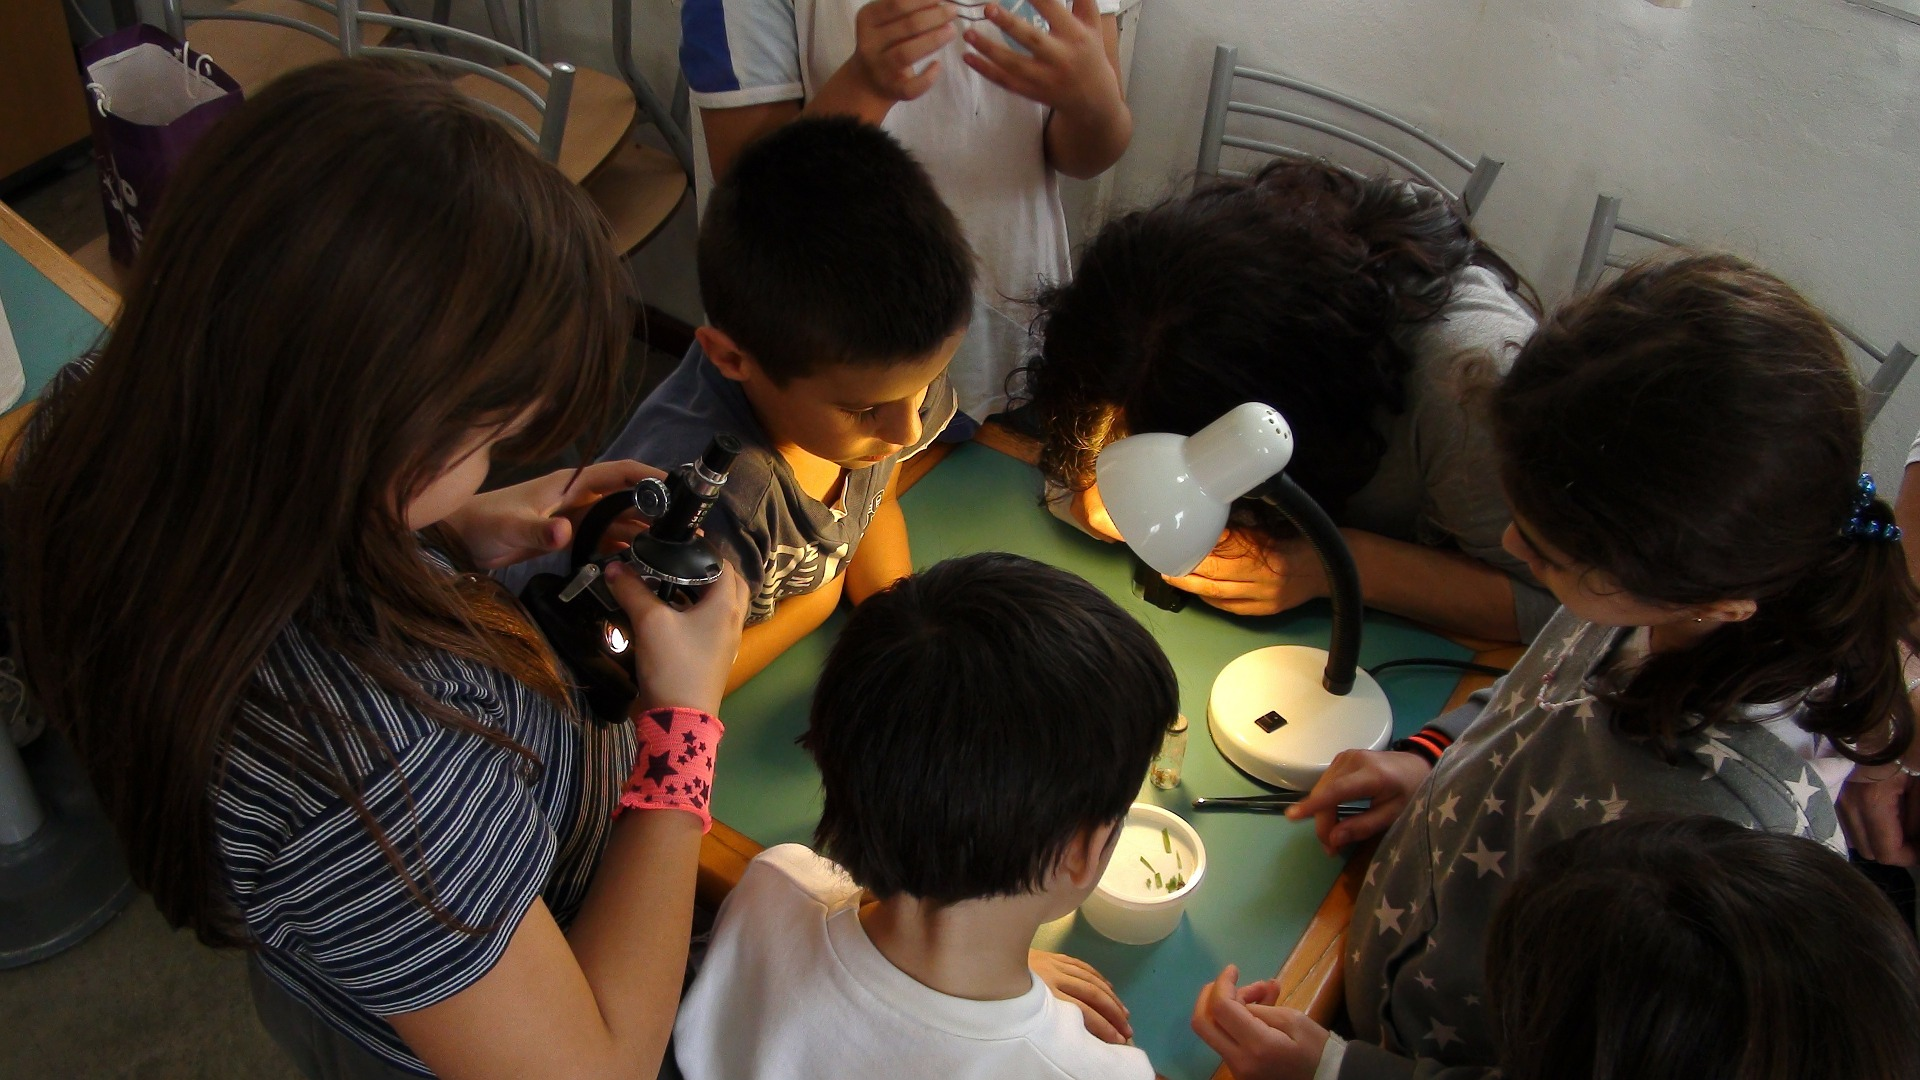 4 Reasons to Invest in a Microscope this School Year